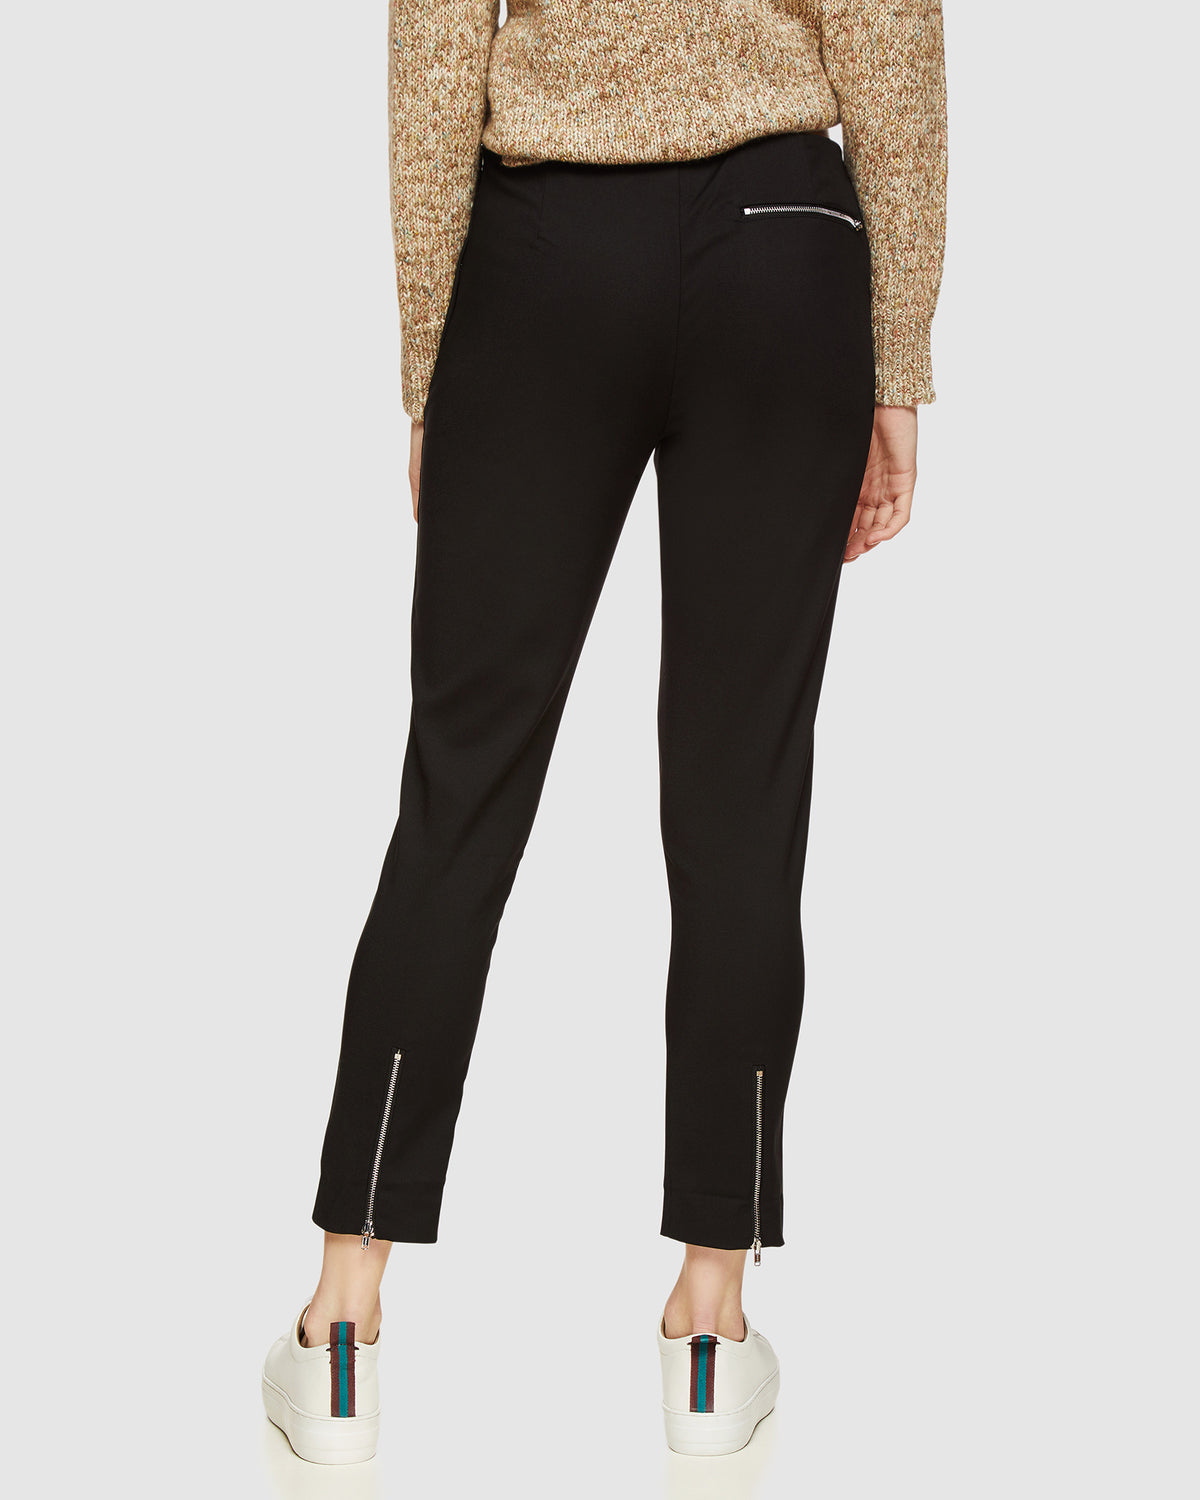 JACKIE ZIPPER CROP STRETCH PANTS BLACK